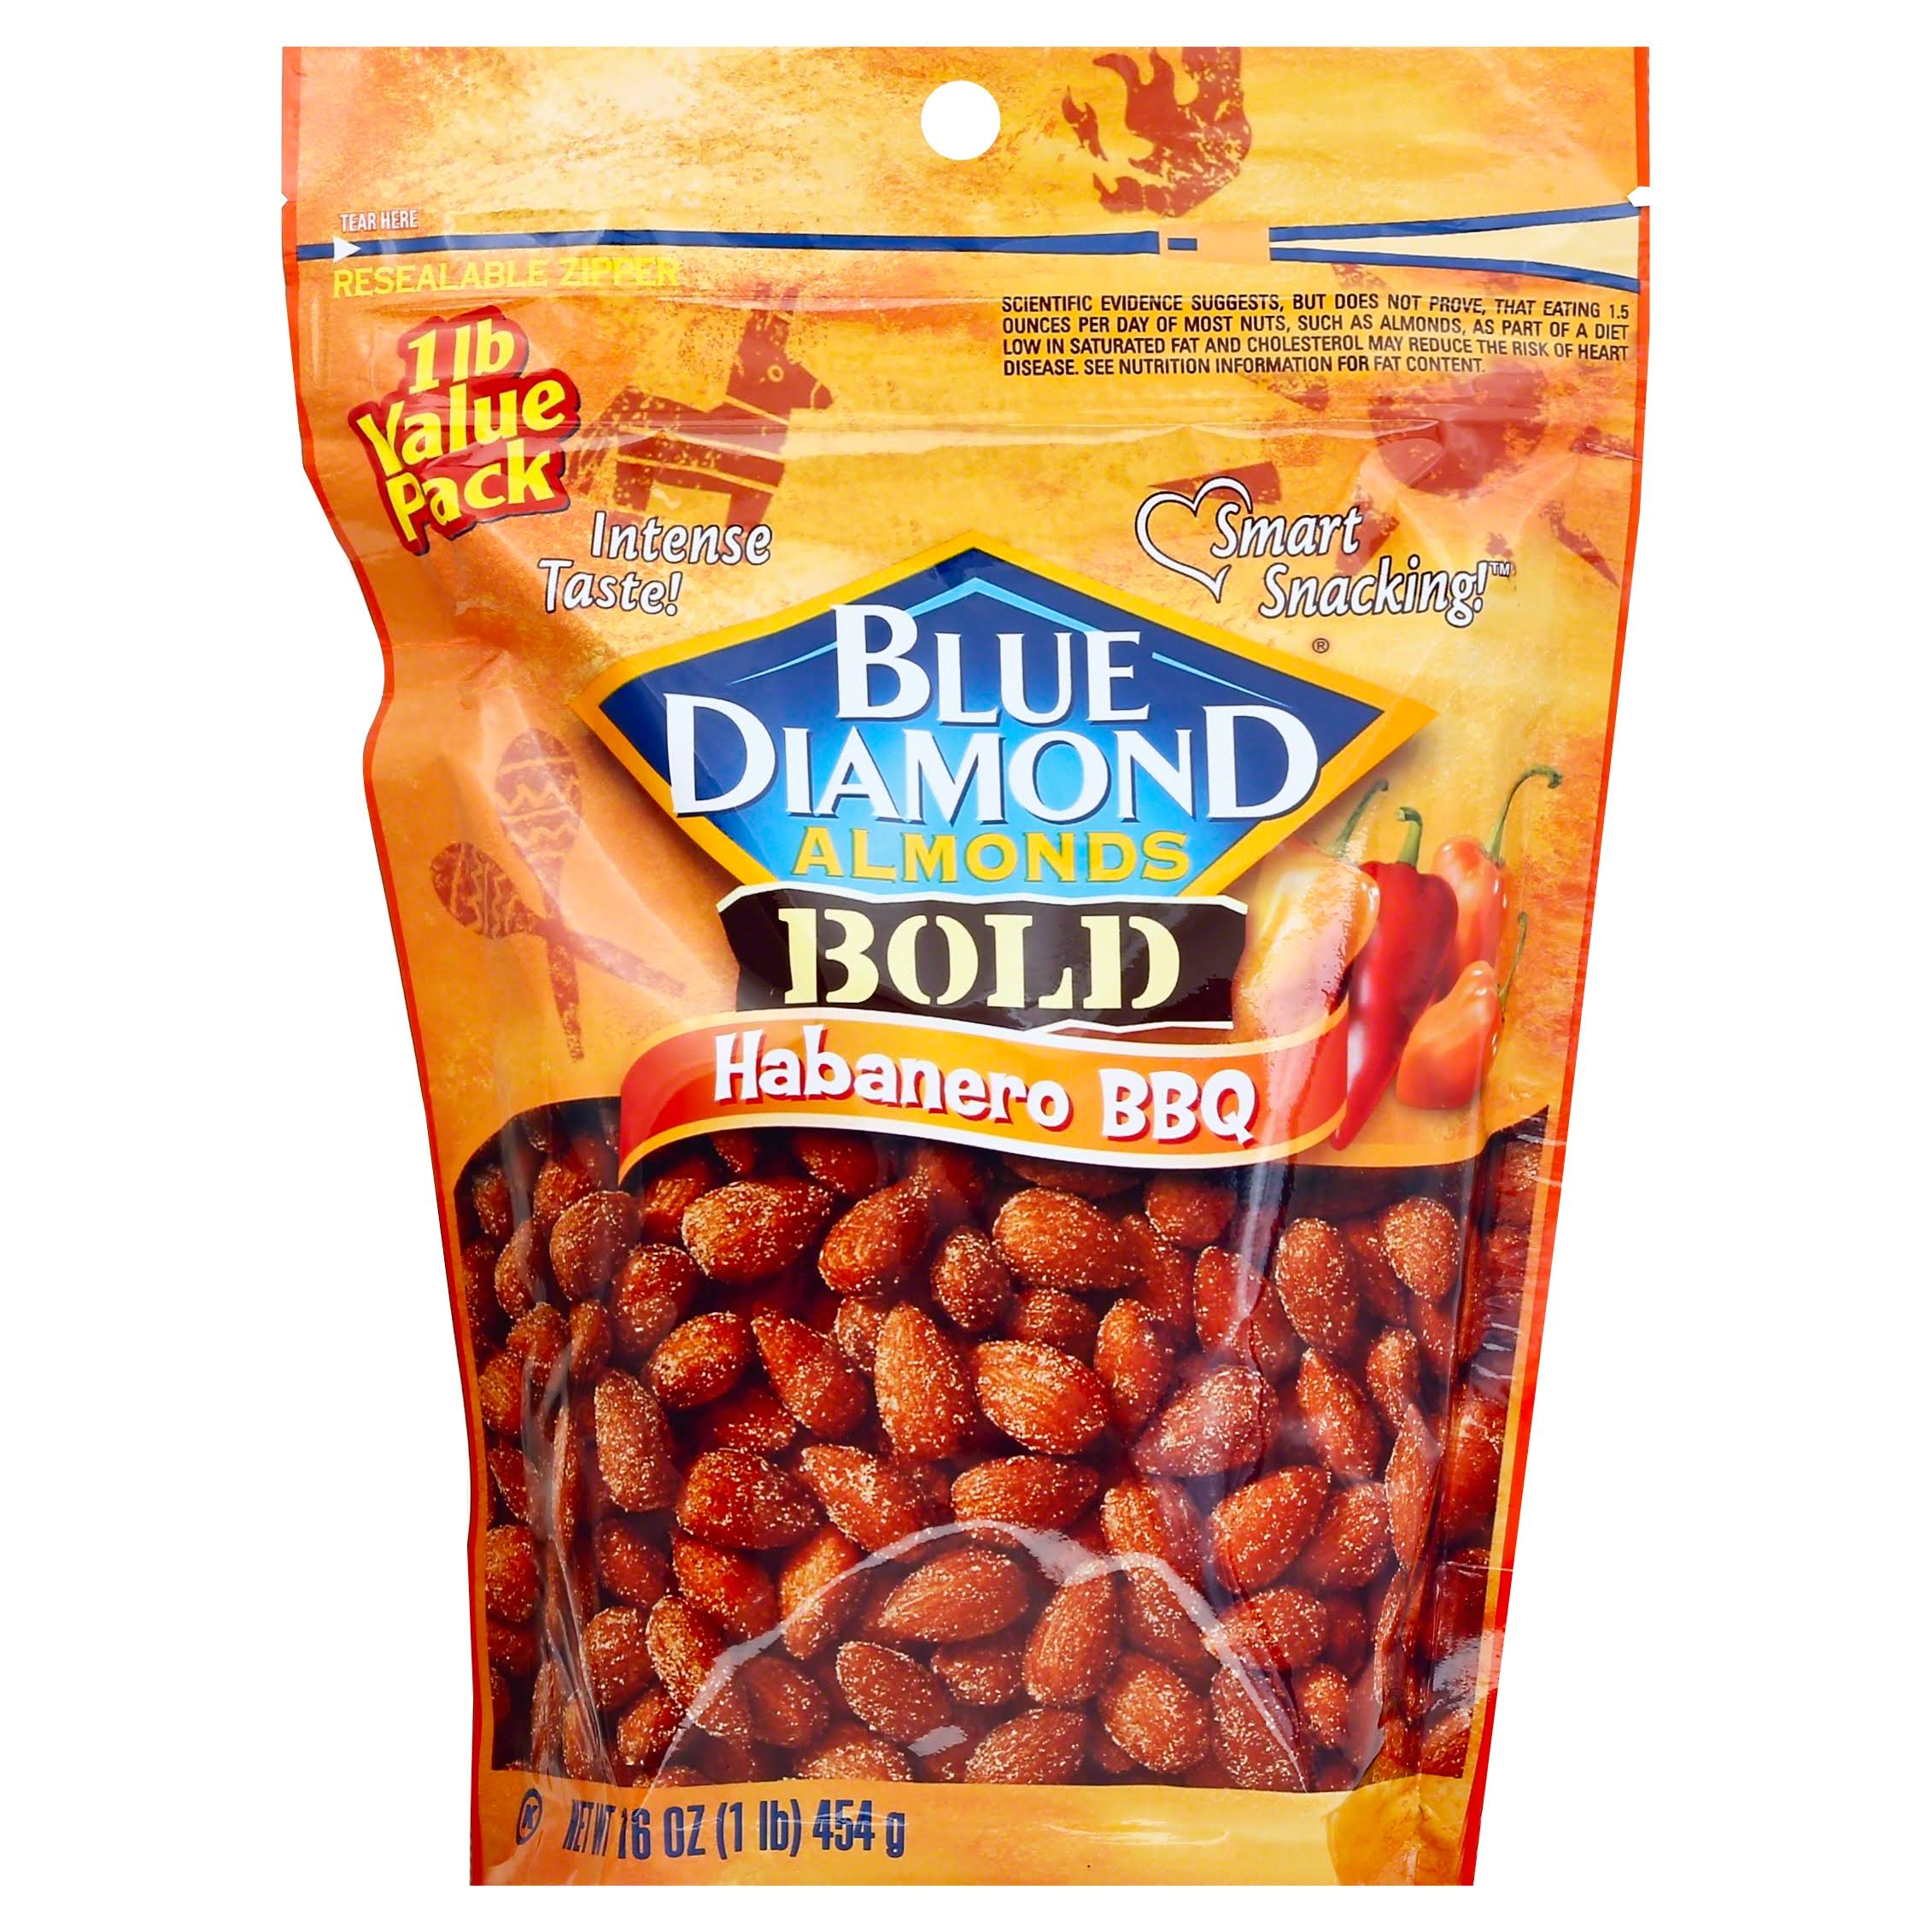 Blue Diamond Bold Almonds - Habanero BBQ, 16oz